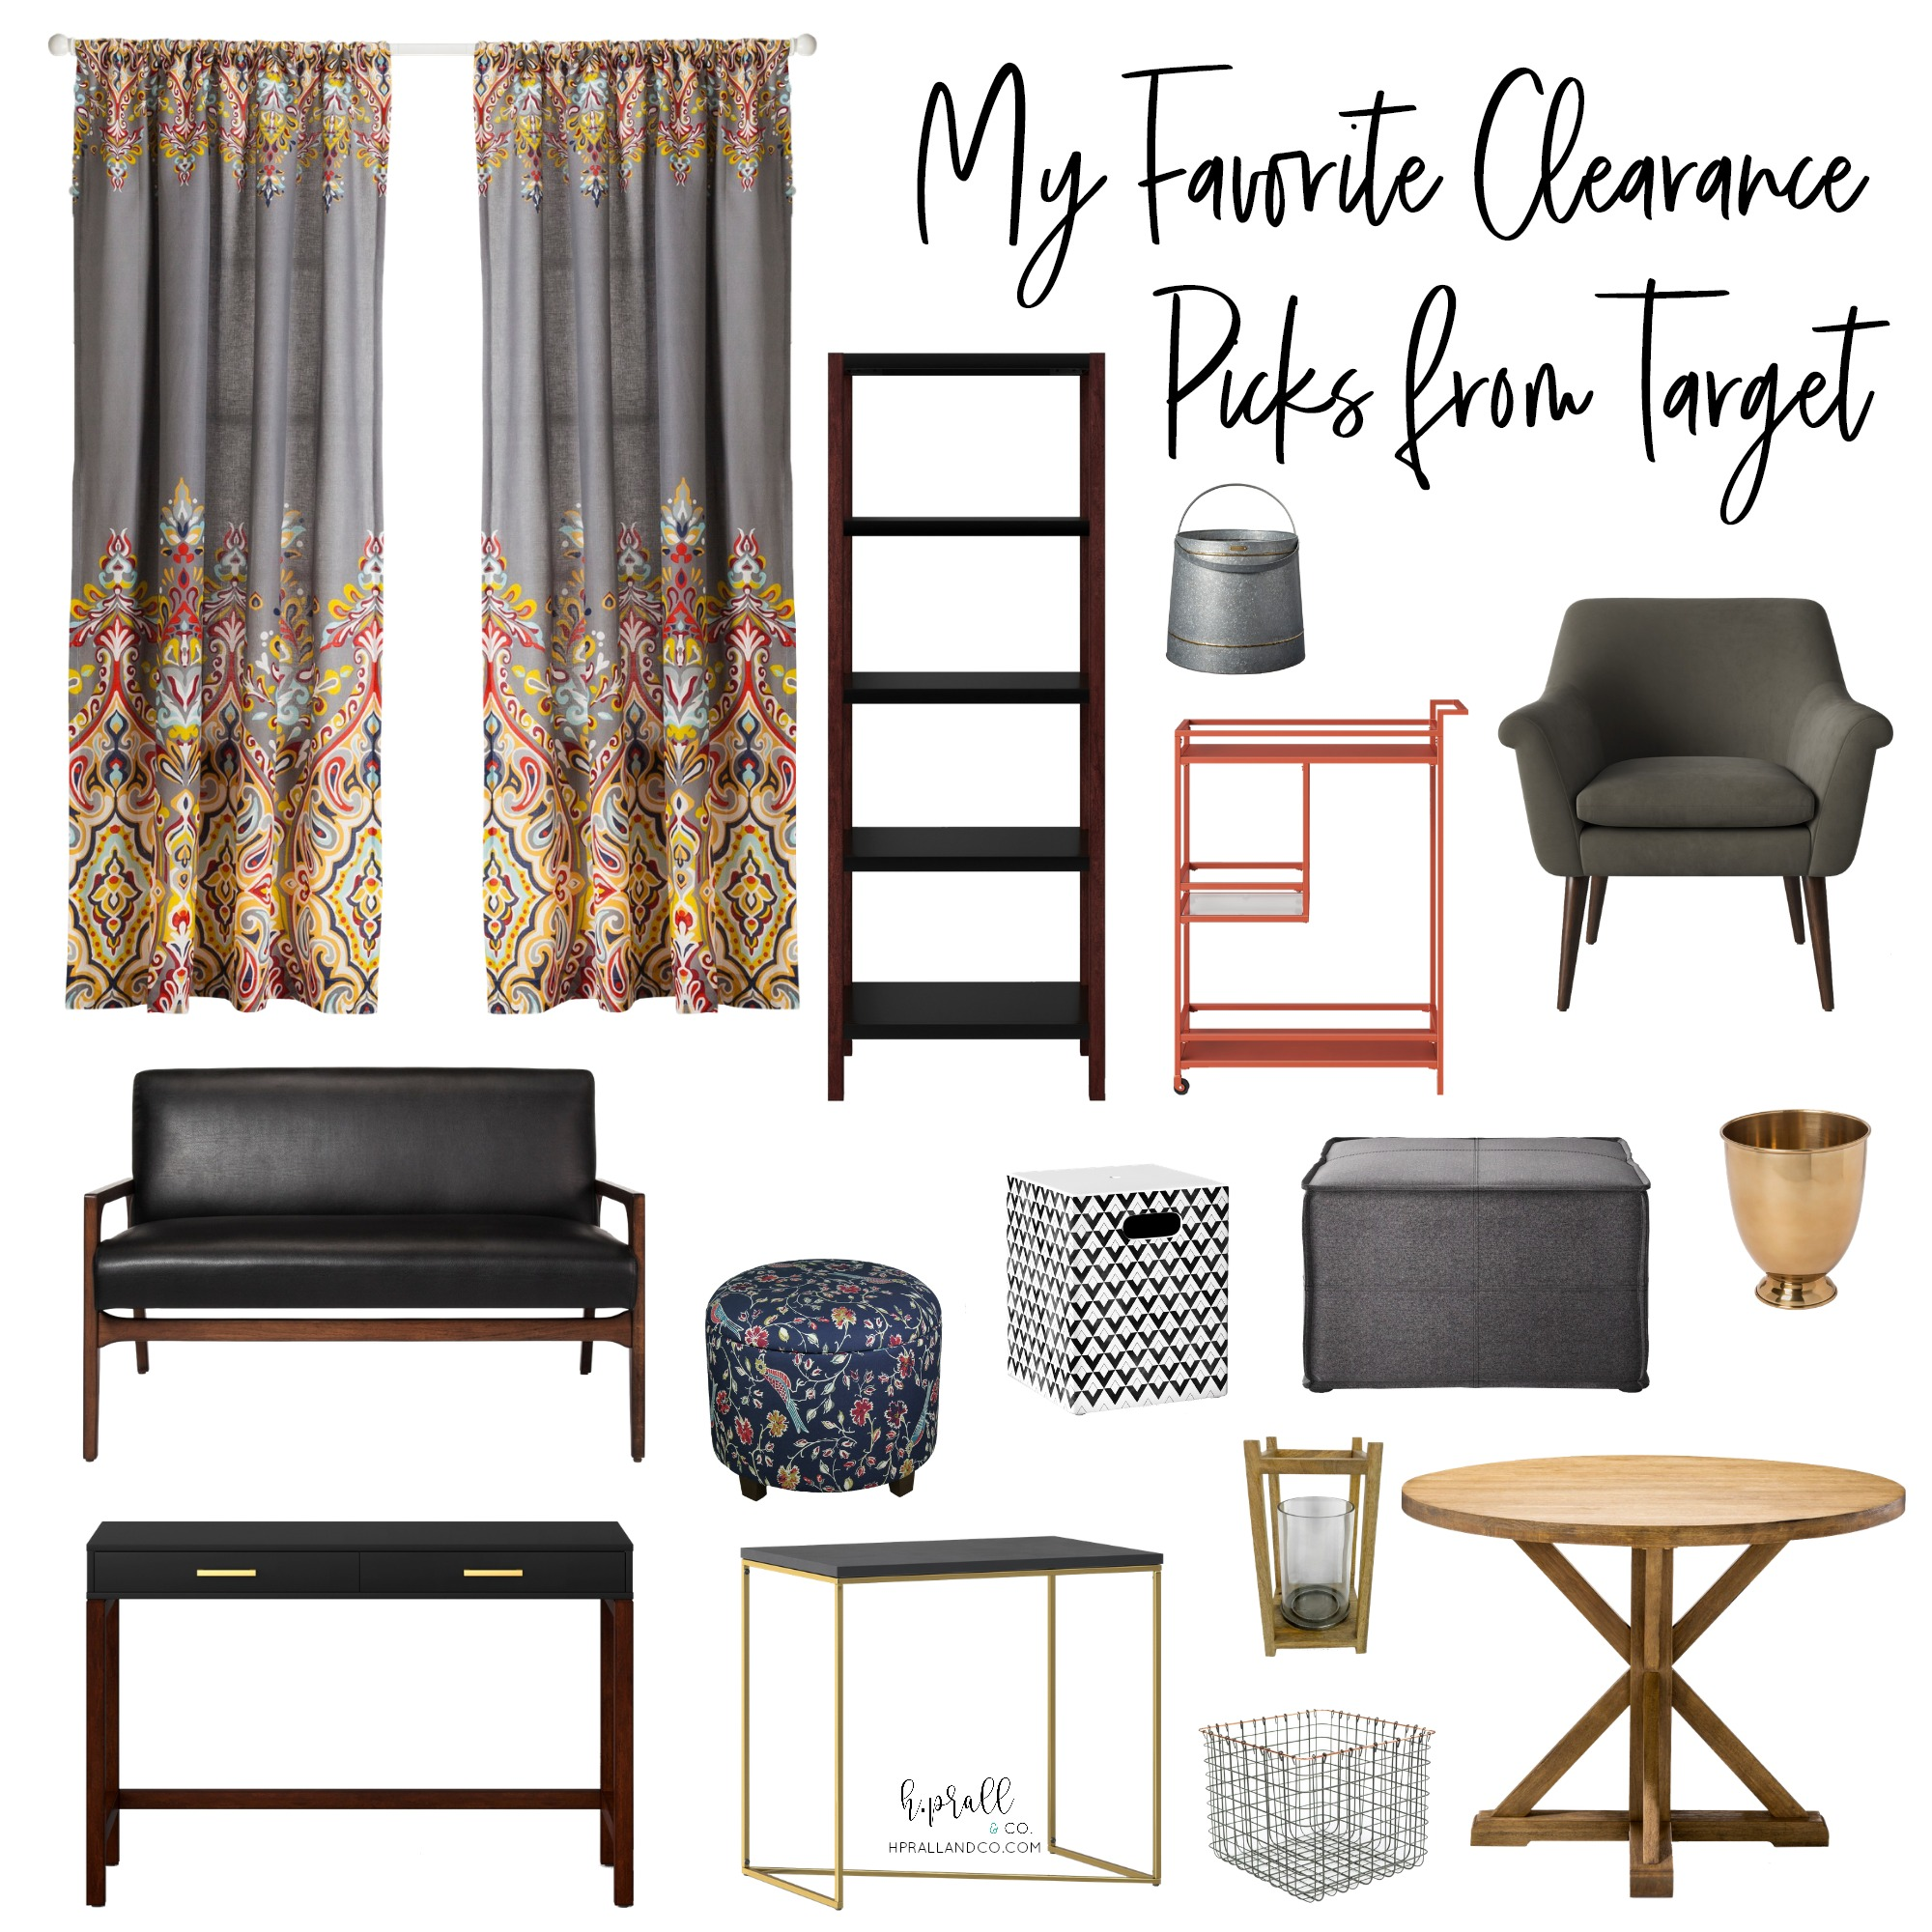 I'm sharing my favorite clearance picks from Target at hprallandco.com!